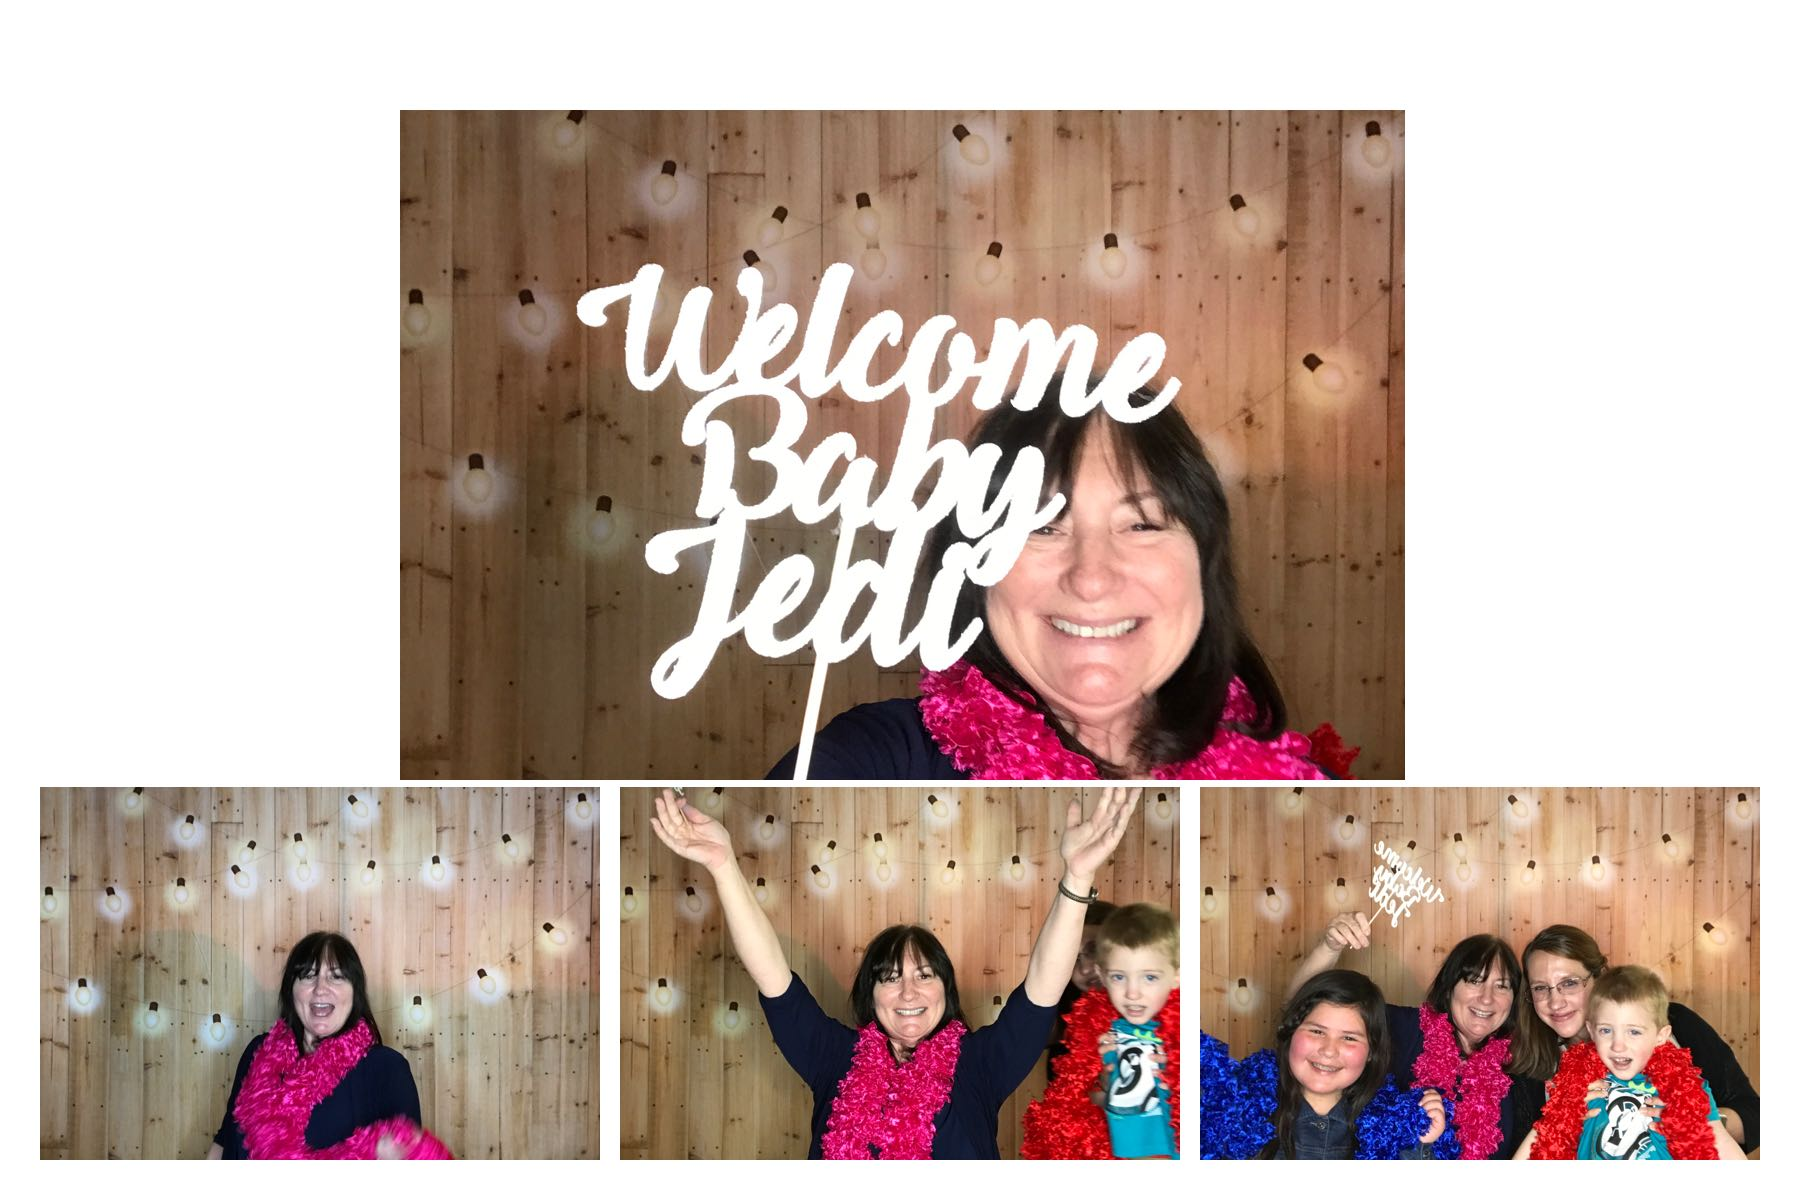 Wood Panel and Lights Photo Booth Backdrop